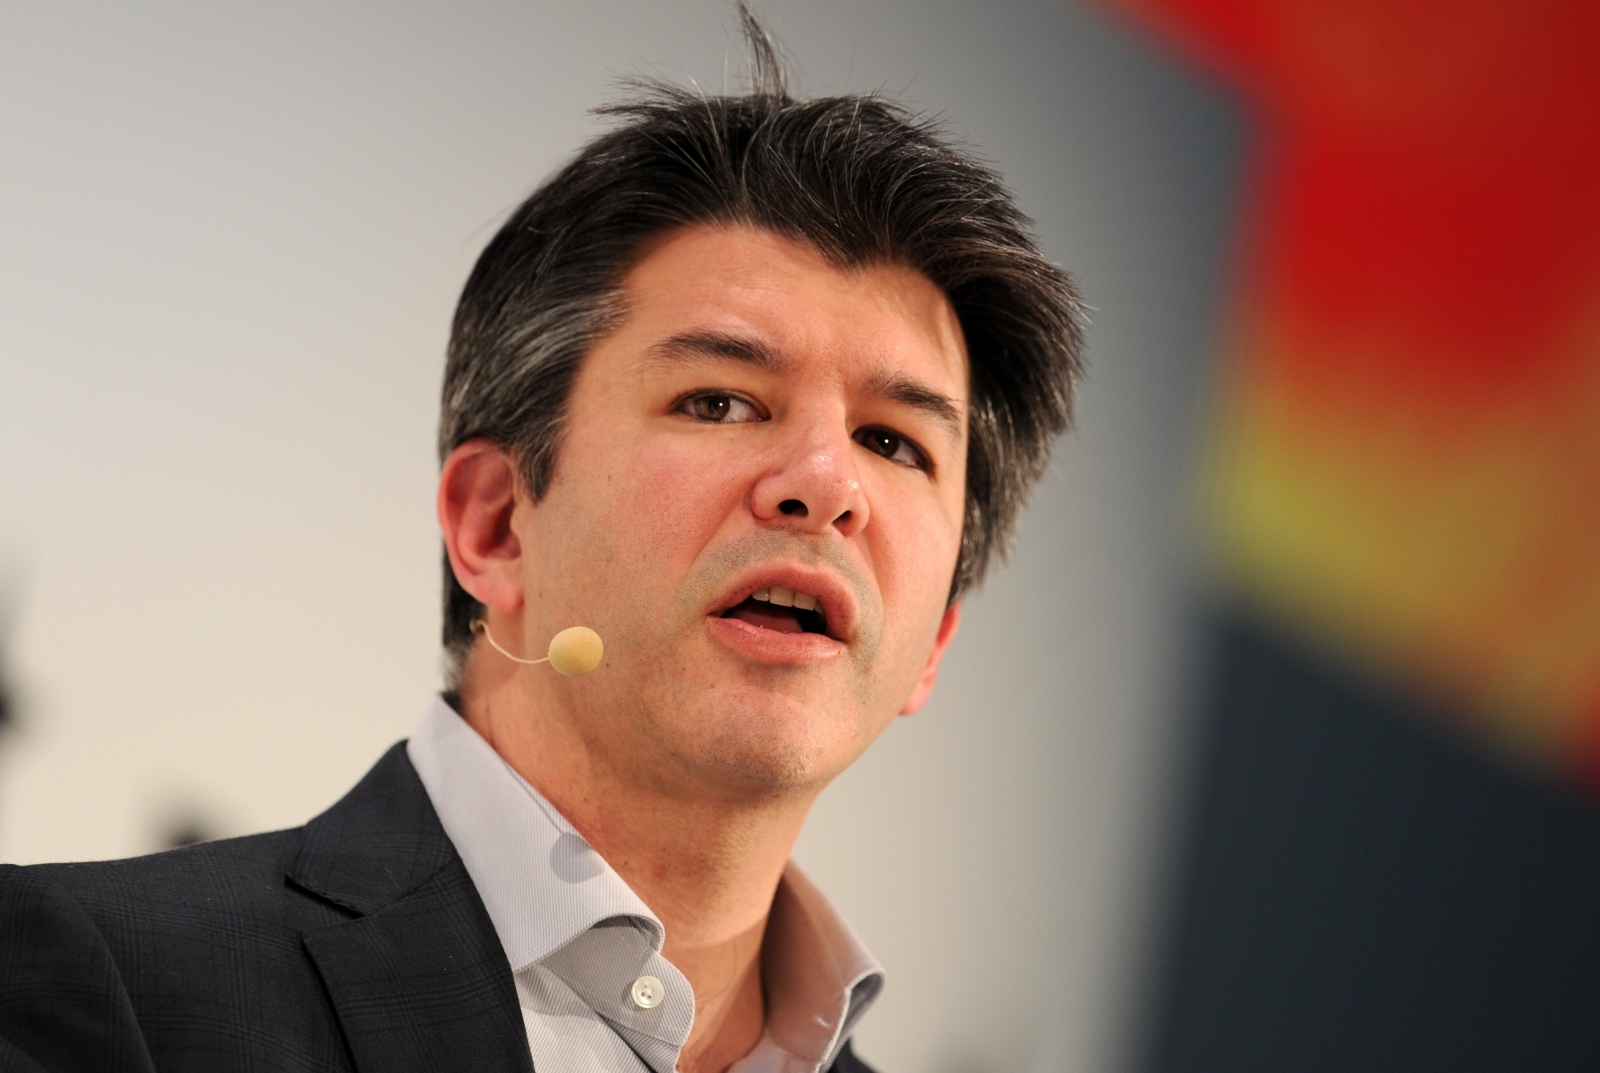 UBER CEO TRAVIS KALANICK FORCED OUT.